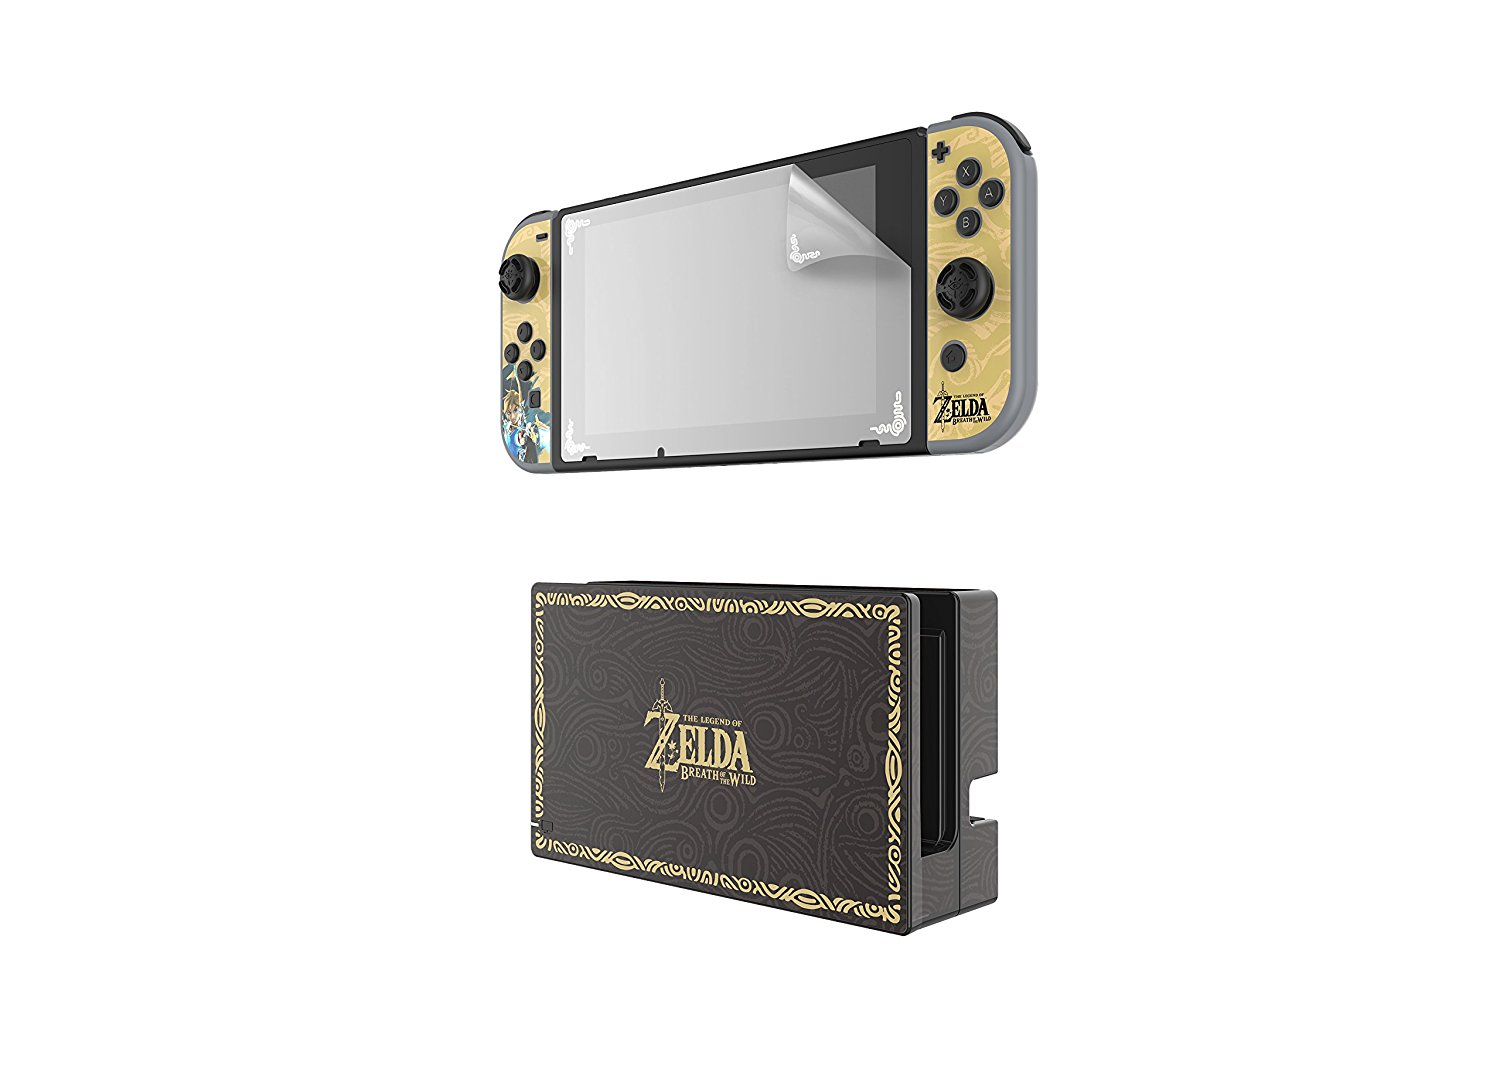 Switch PDP, HORI accessories starting to go live on Amazon ...